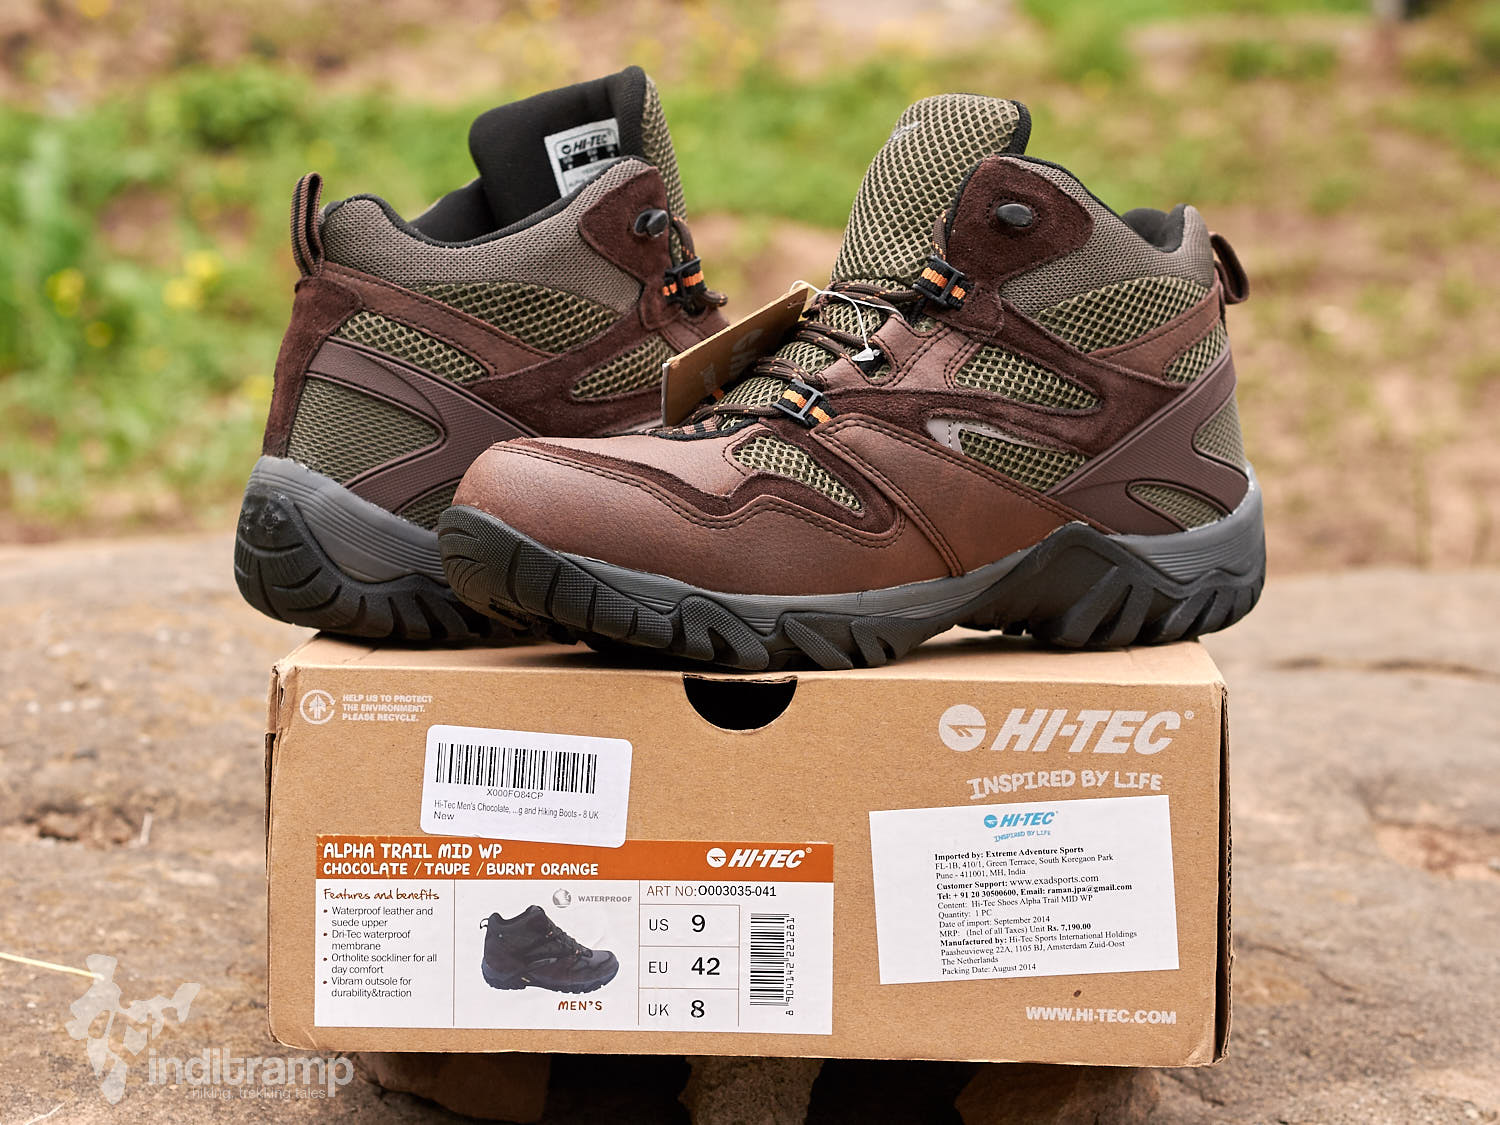 Hi-Tec's Alpha Trail Mid.The pair that we own and are quite happy with